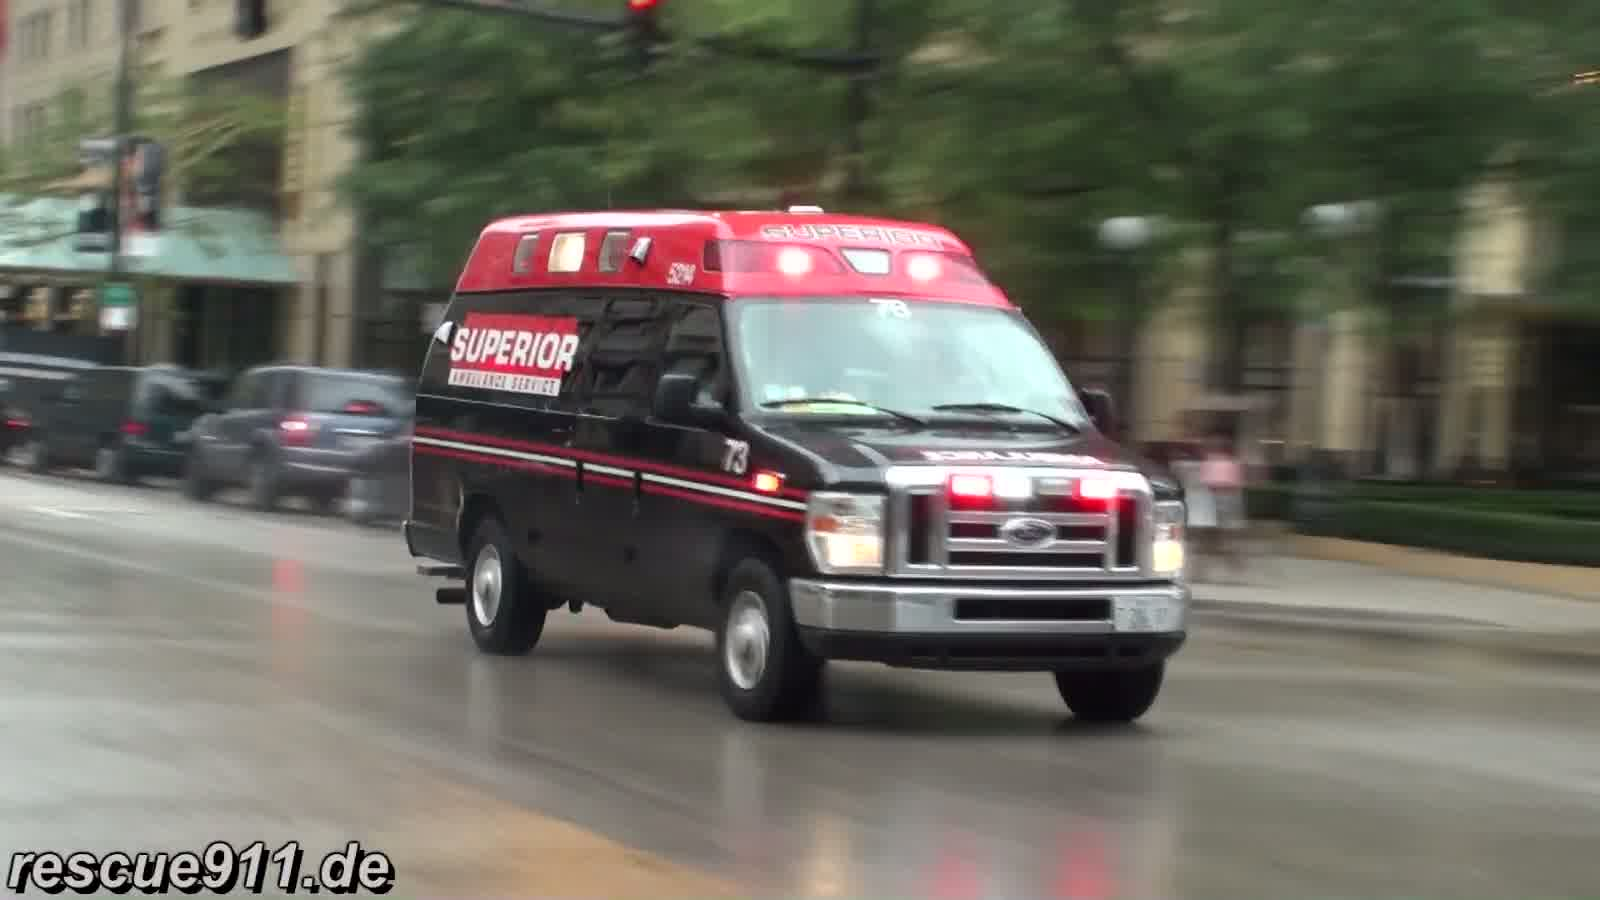 Ambulance Superior Chicago